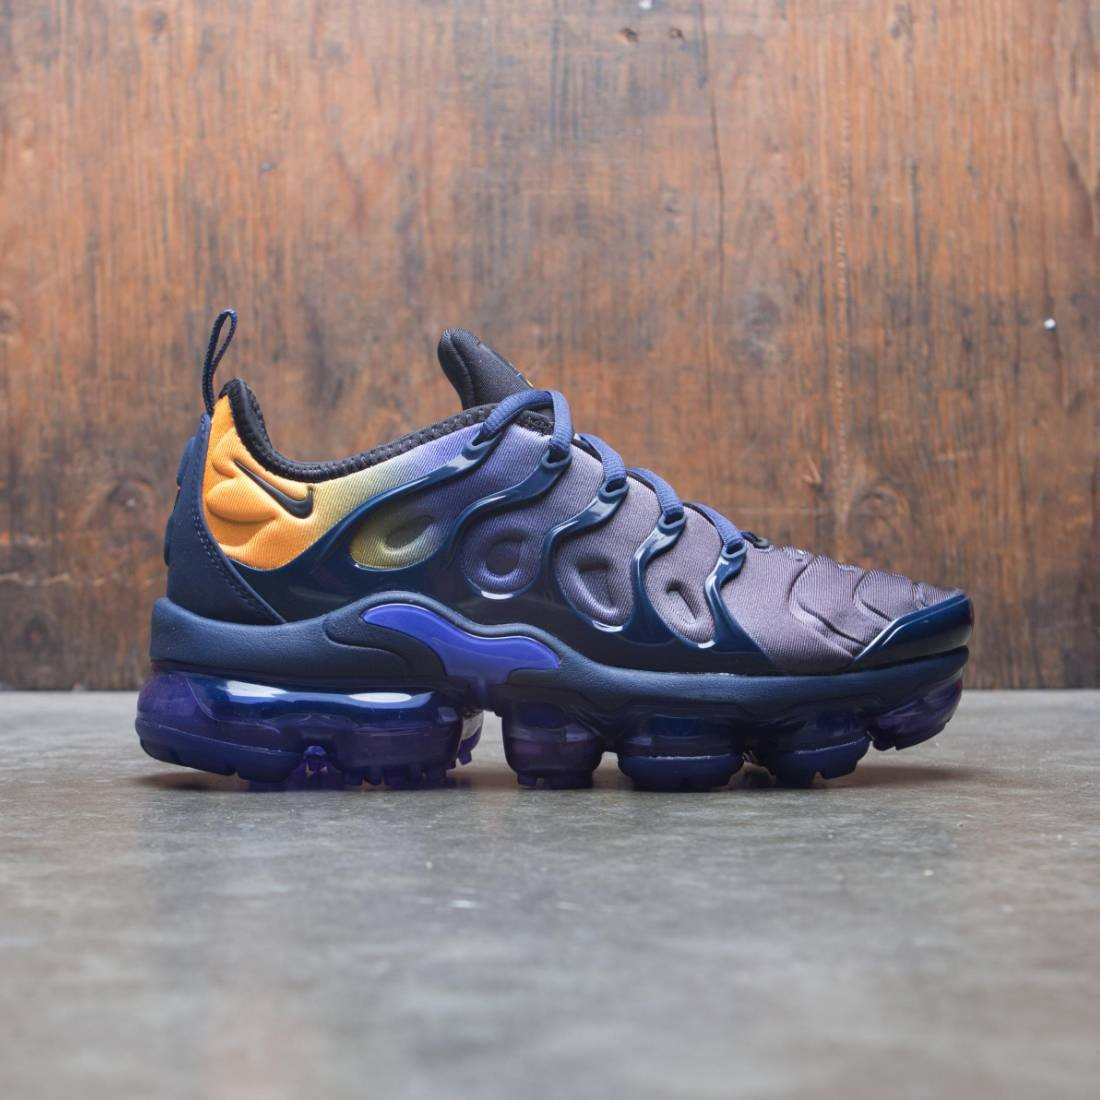 buy popular c4854 46dae Nike Women Air Vapormax Plus (persian violet / black-midnight navy)